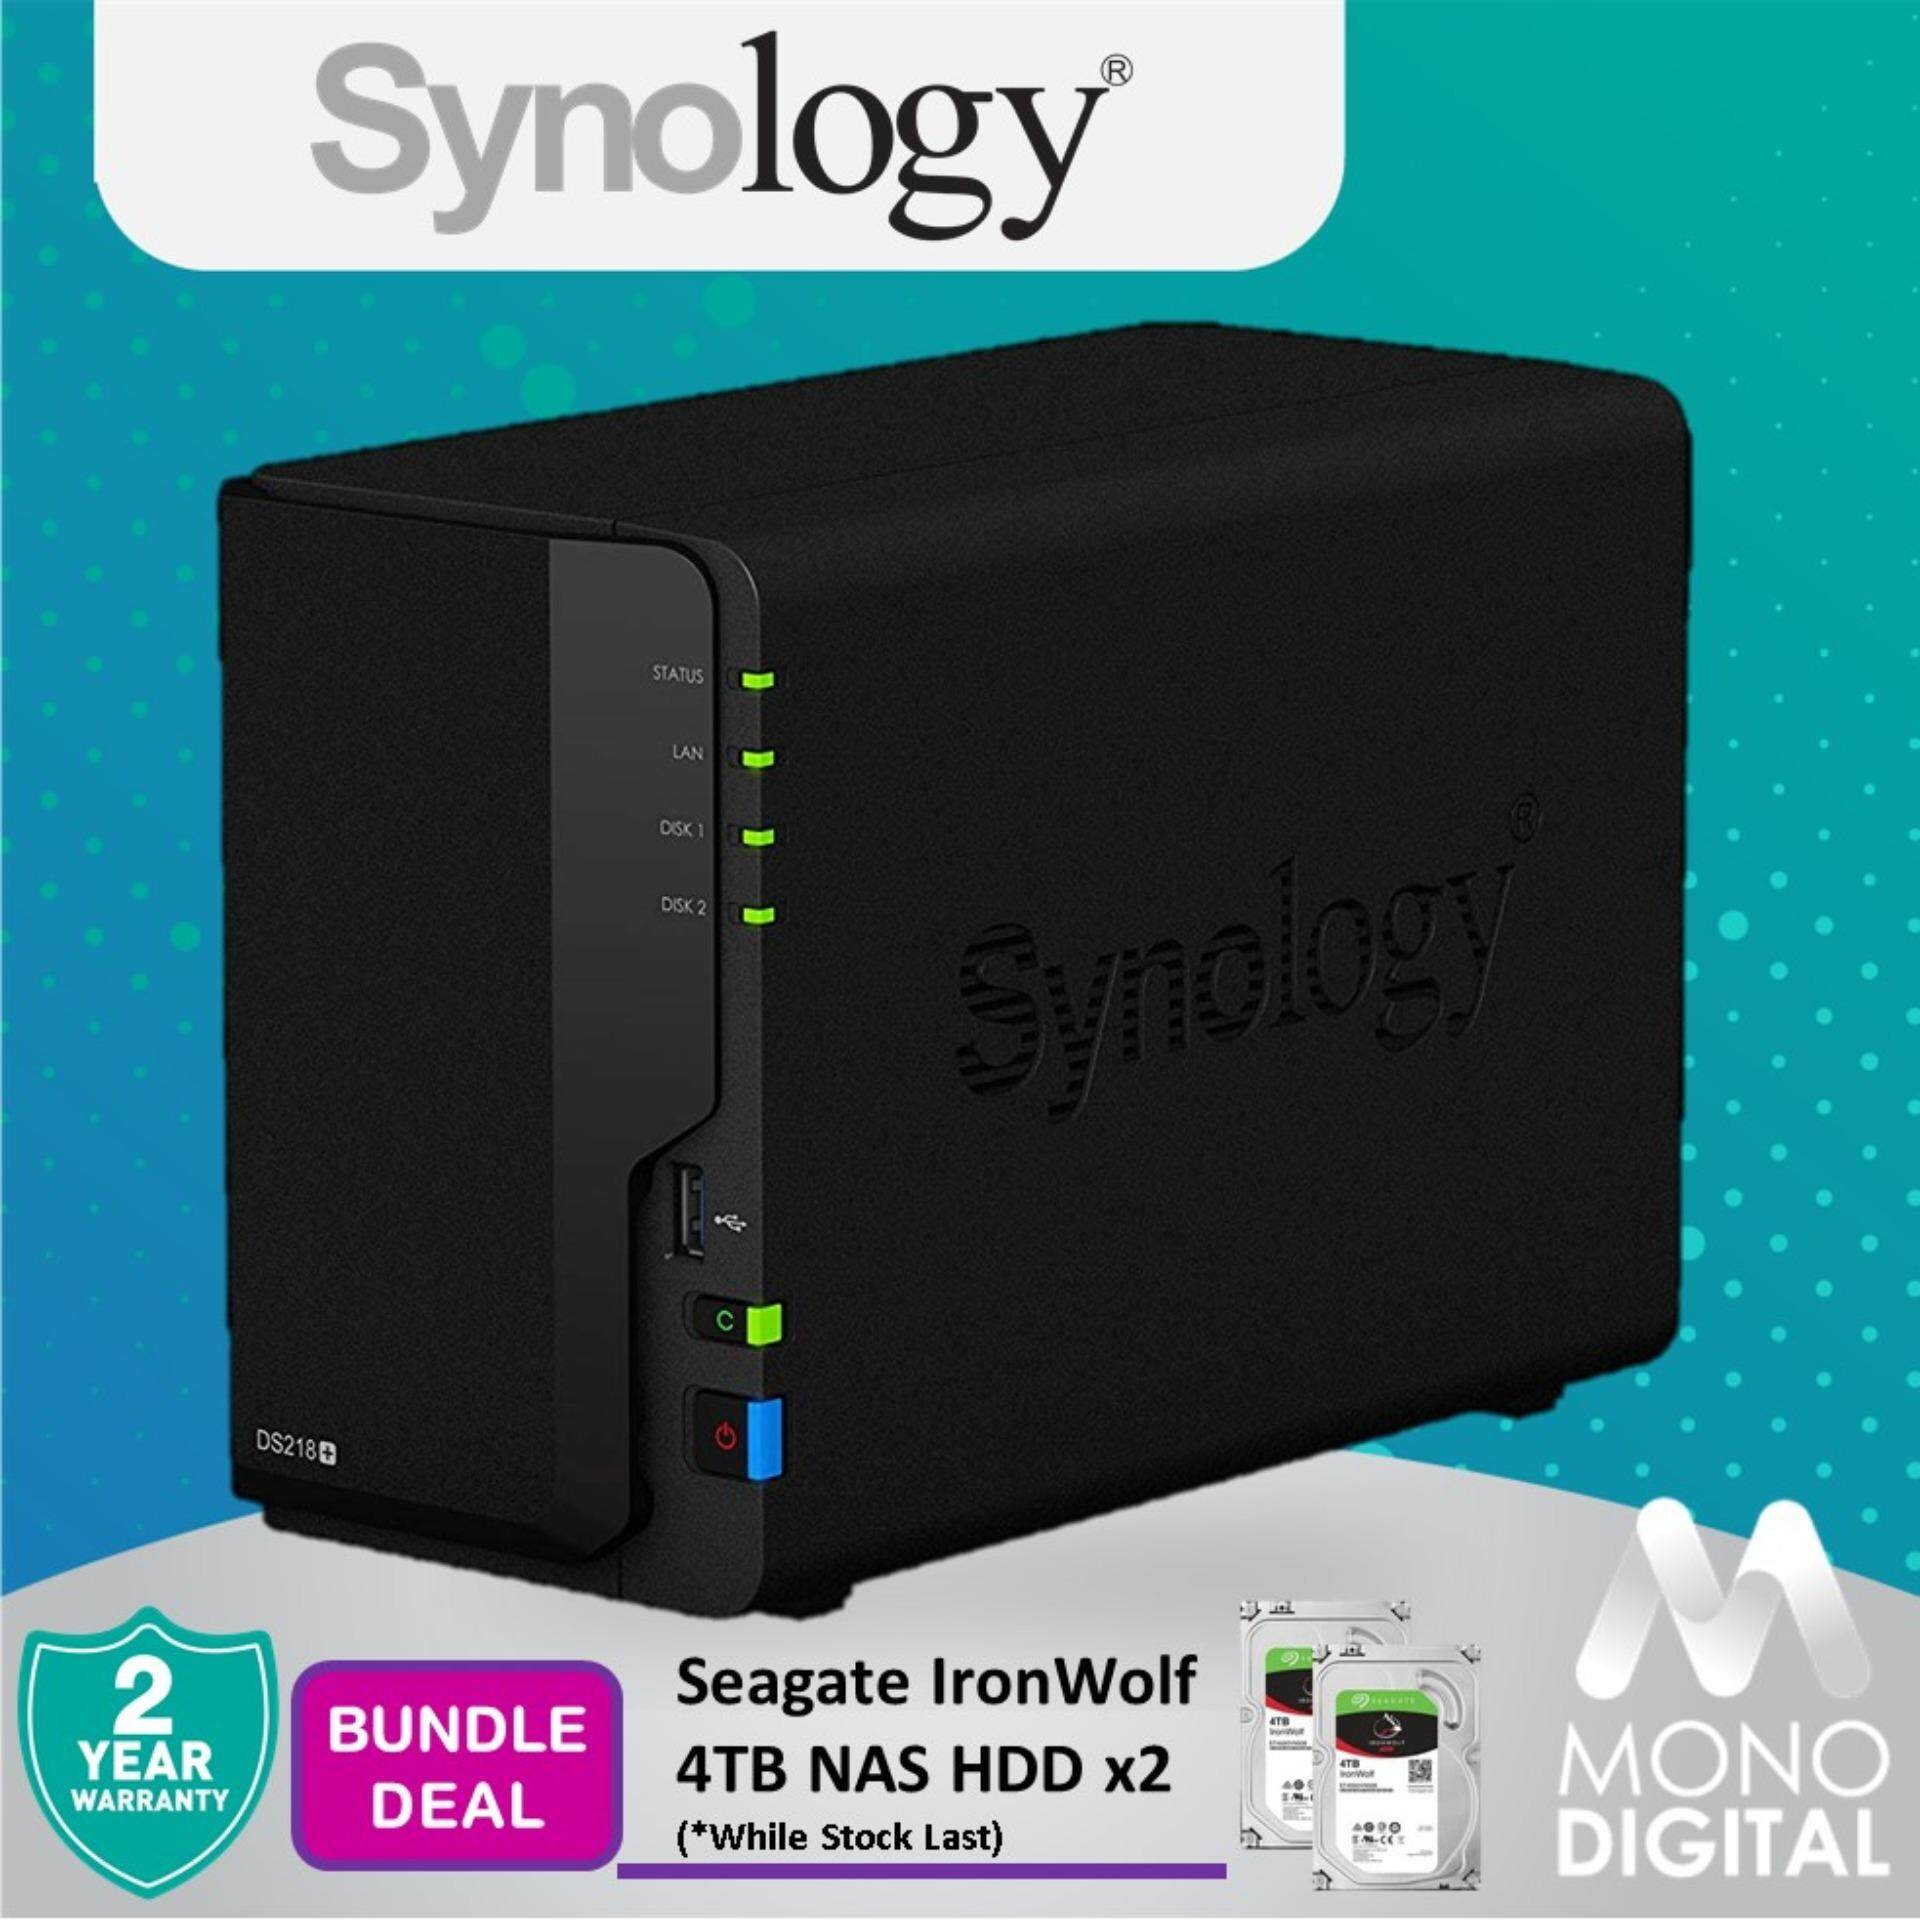 Synology DS218+ DiskStation NAS 2-Bays Bundle Seagate Ironwolf 4TB HDD x  2units (Original Synology Malaysia)